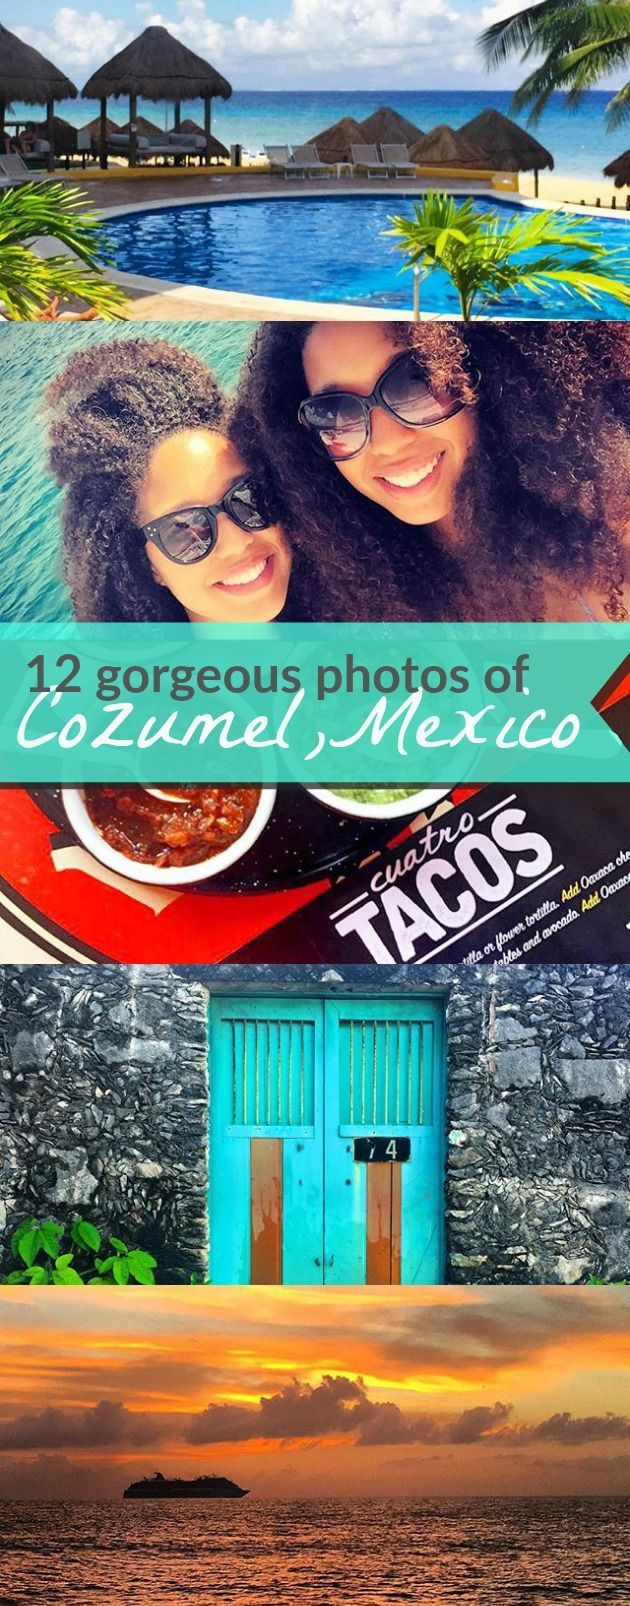 12 gorgeous photos Of Cozumel, Mexico that will make you want to book a flight NOW